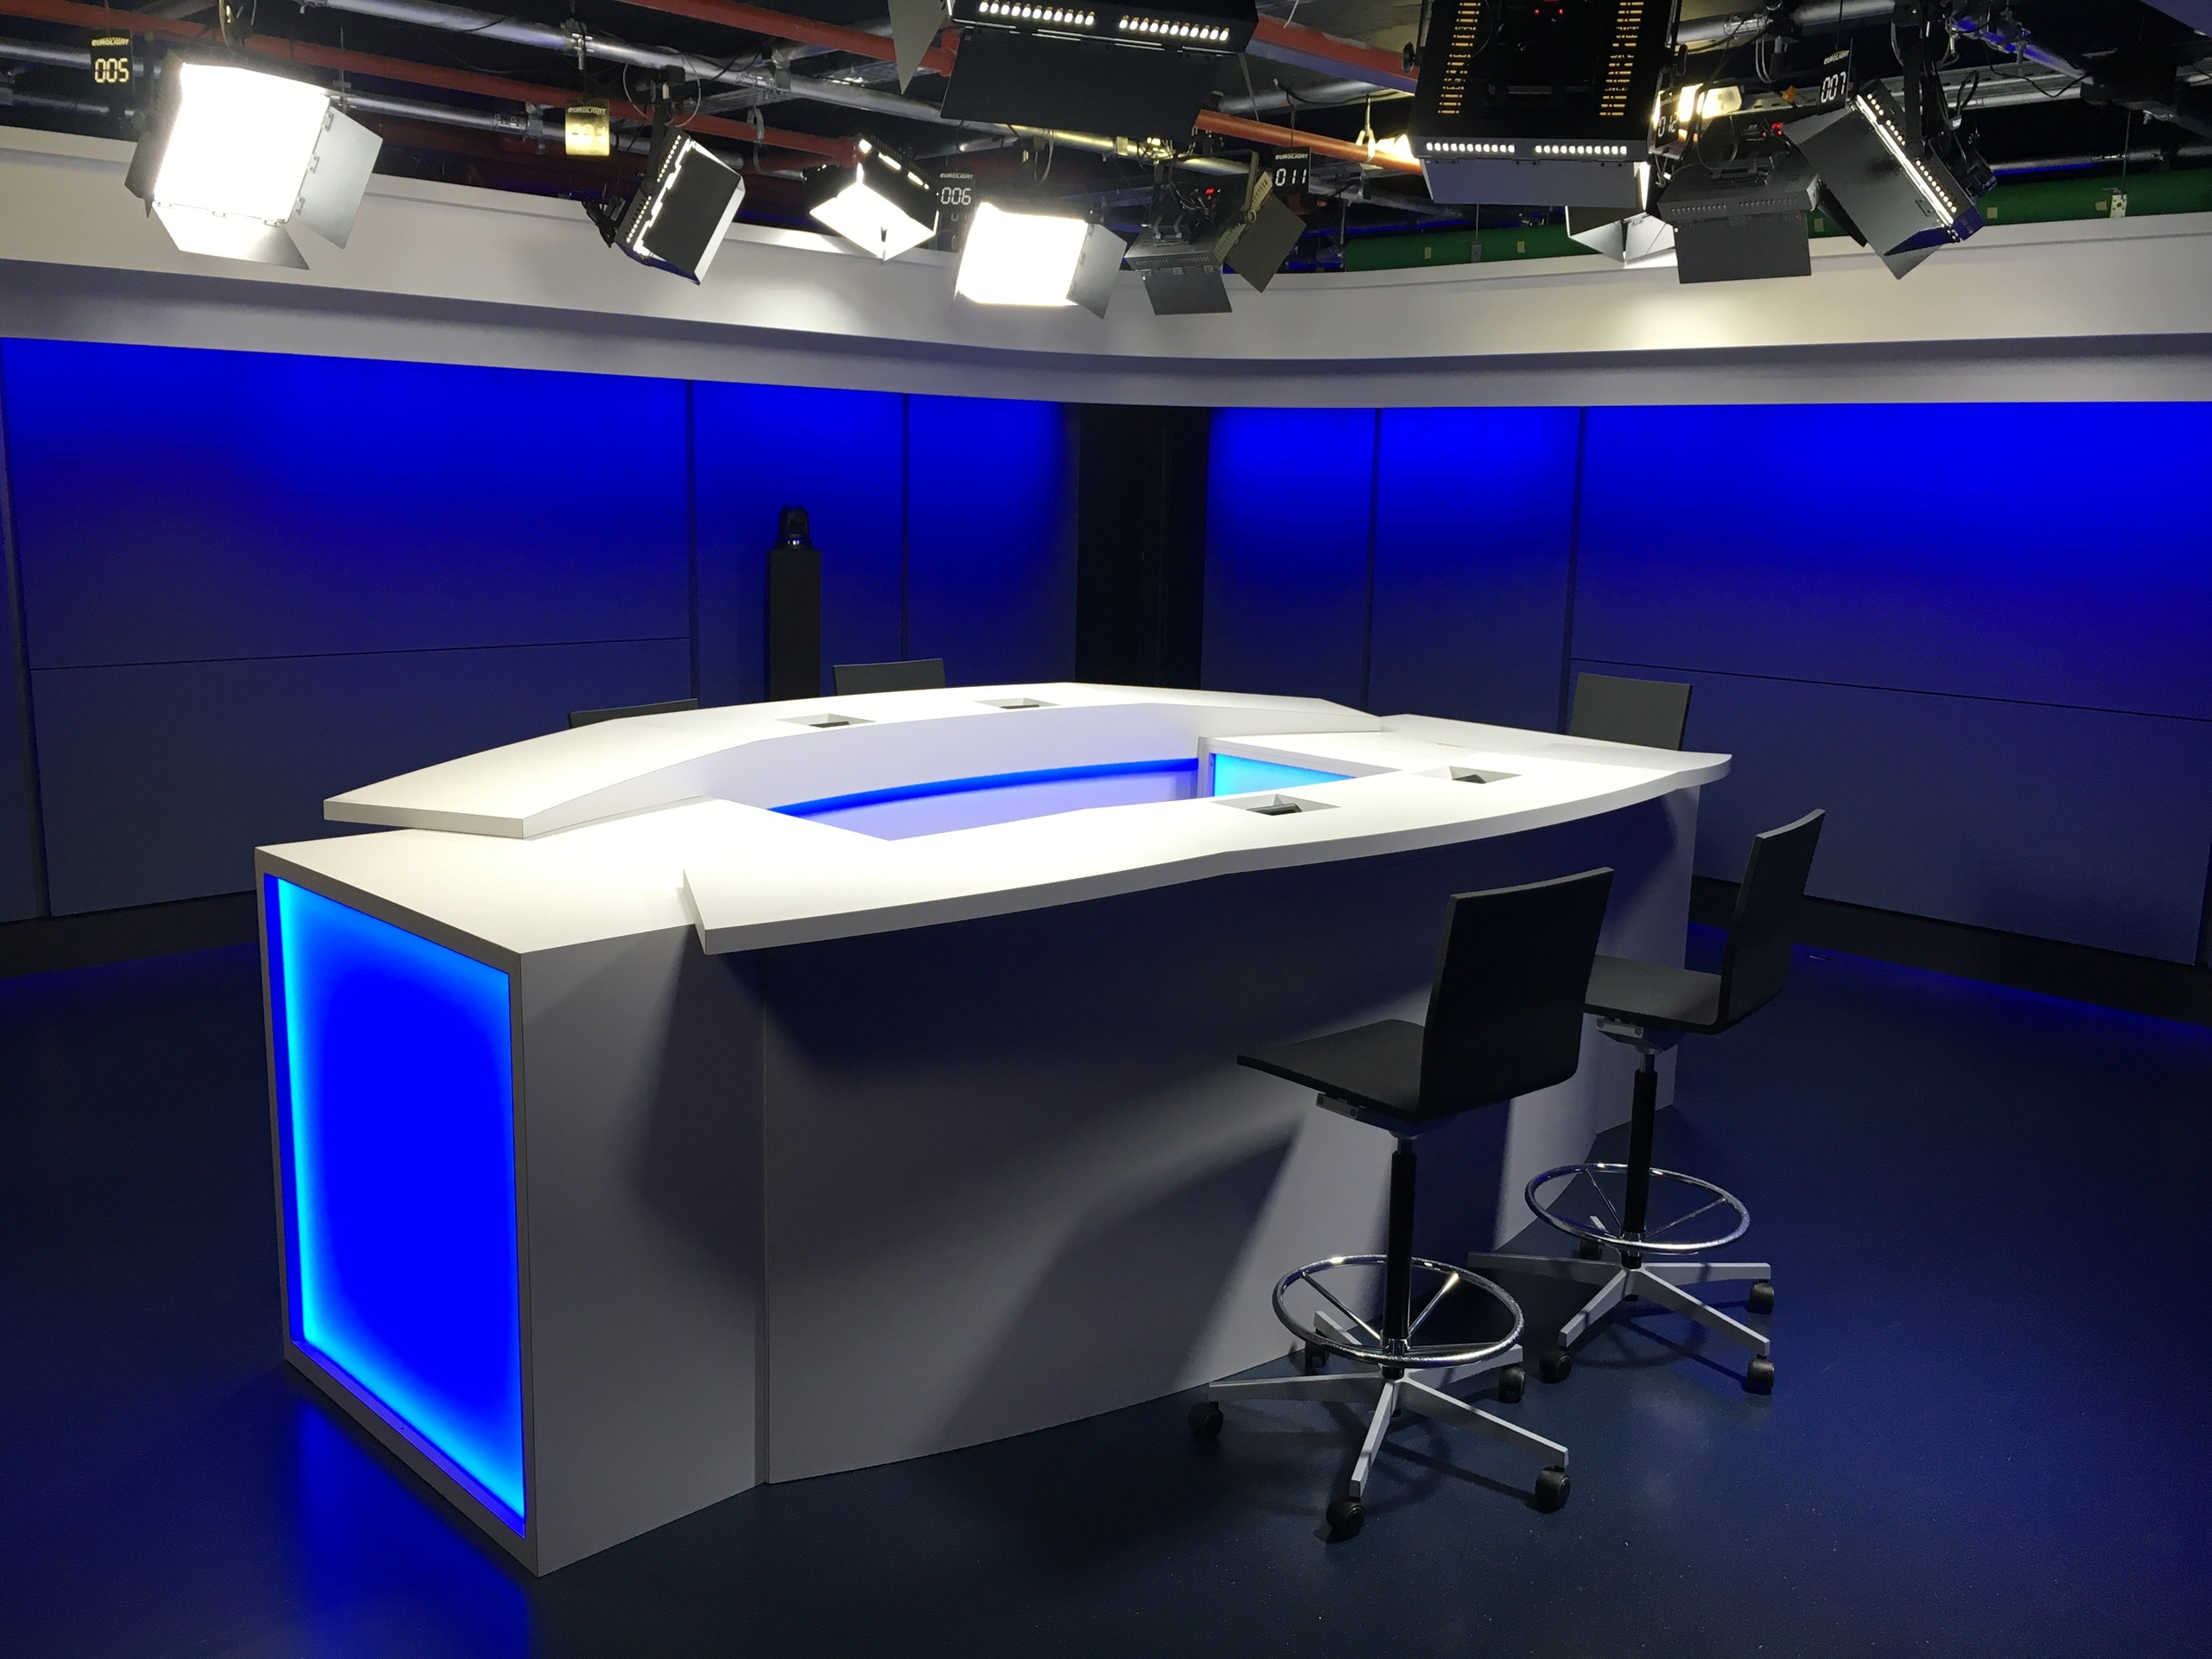 VIDELIOMedia realizes the integration of a television production